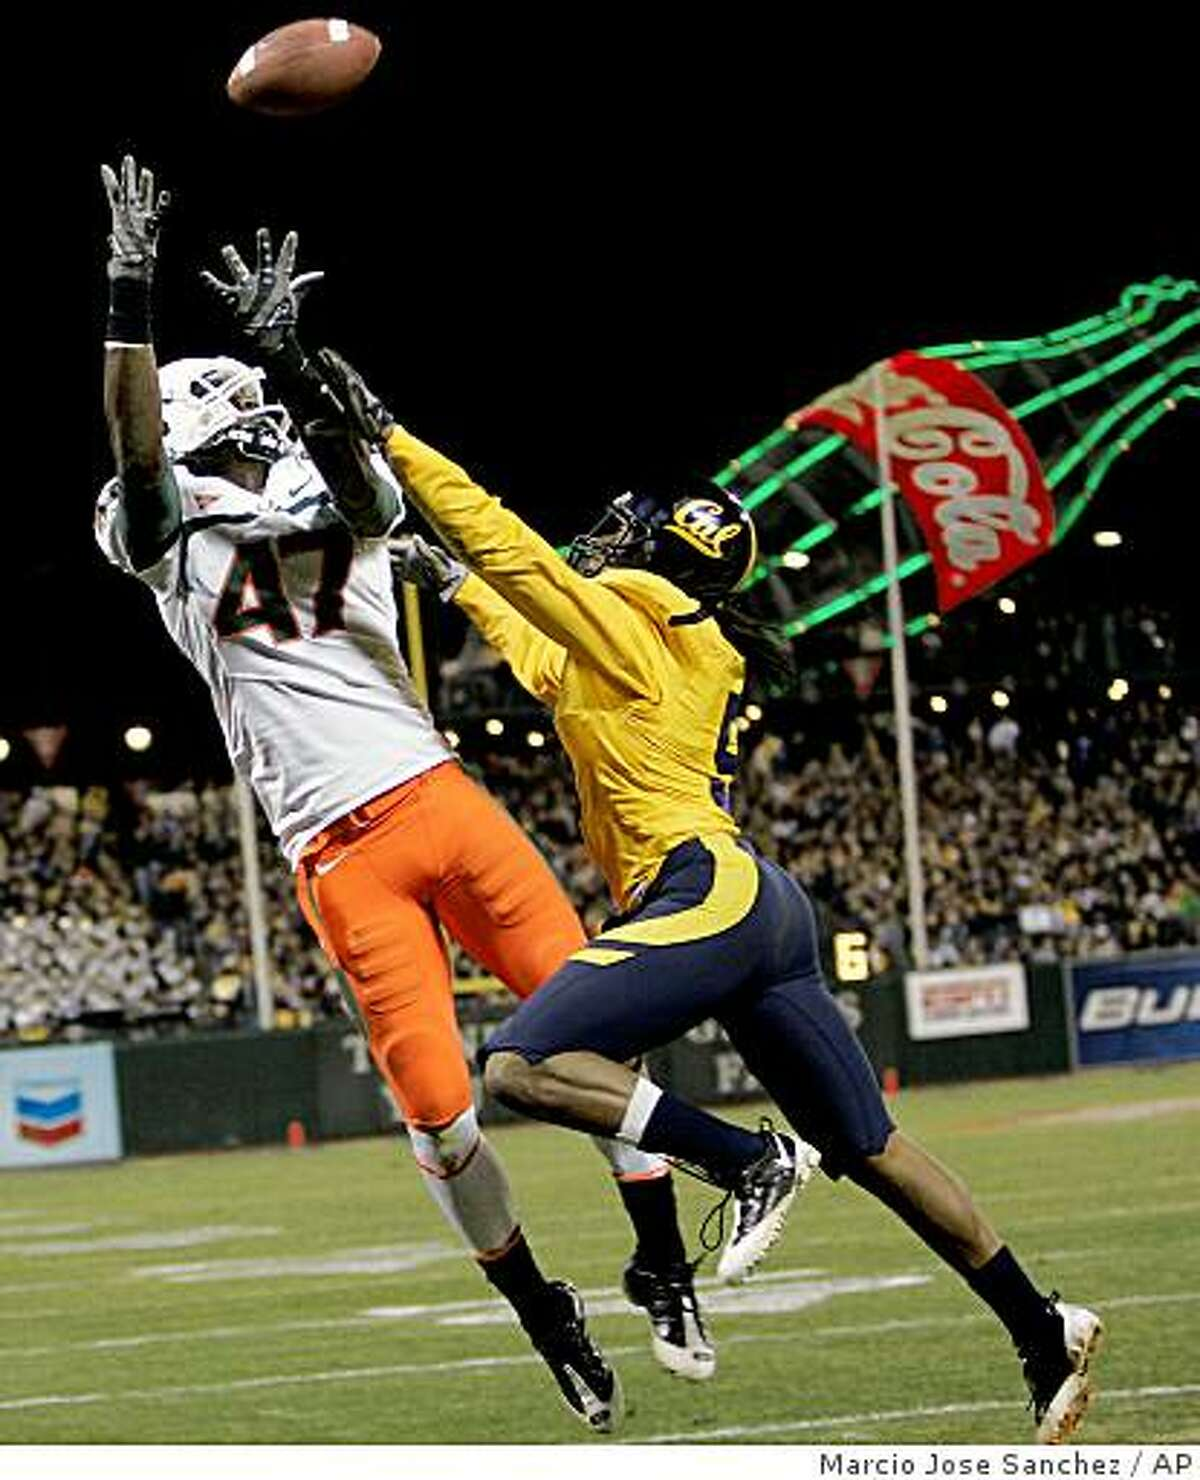 Miami wide receiver Laron Byrd (47) reaches for a pass in the end zone as California cornerback Syd'Quan Thompson defends in the second half of the Emerald Bowl NCAA college football game in San Francisco, Saturday, Dec. 27, 2008. Byrd dropped the ball. California won 24-17. (AP Photo/Marcio Jose Sanchez)